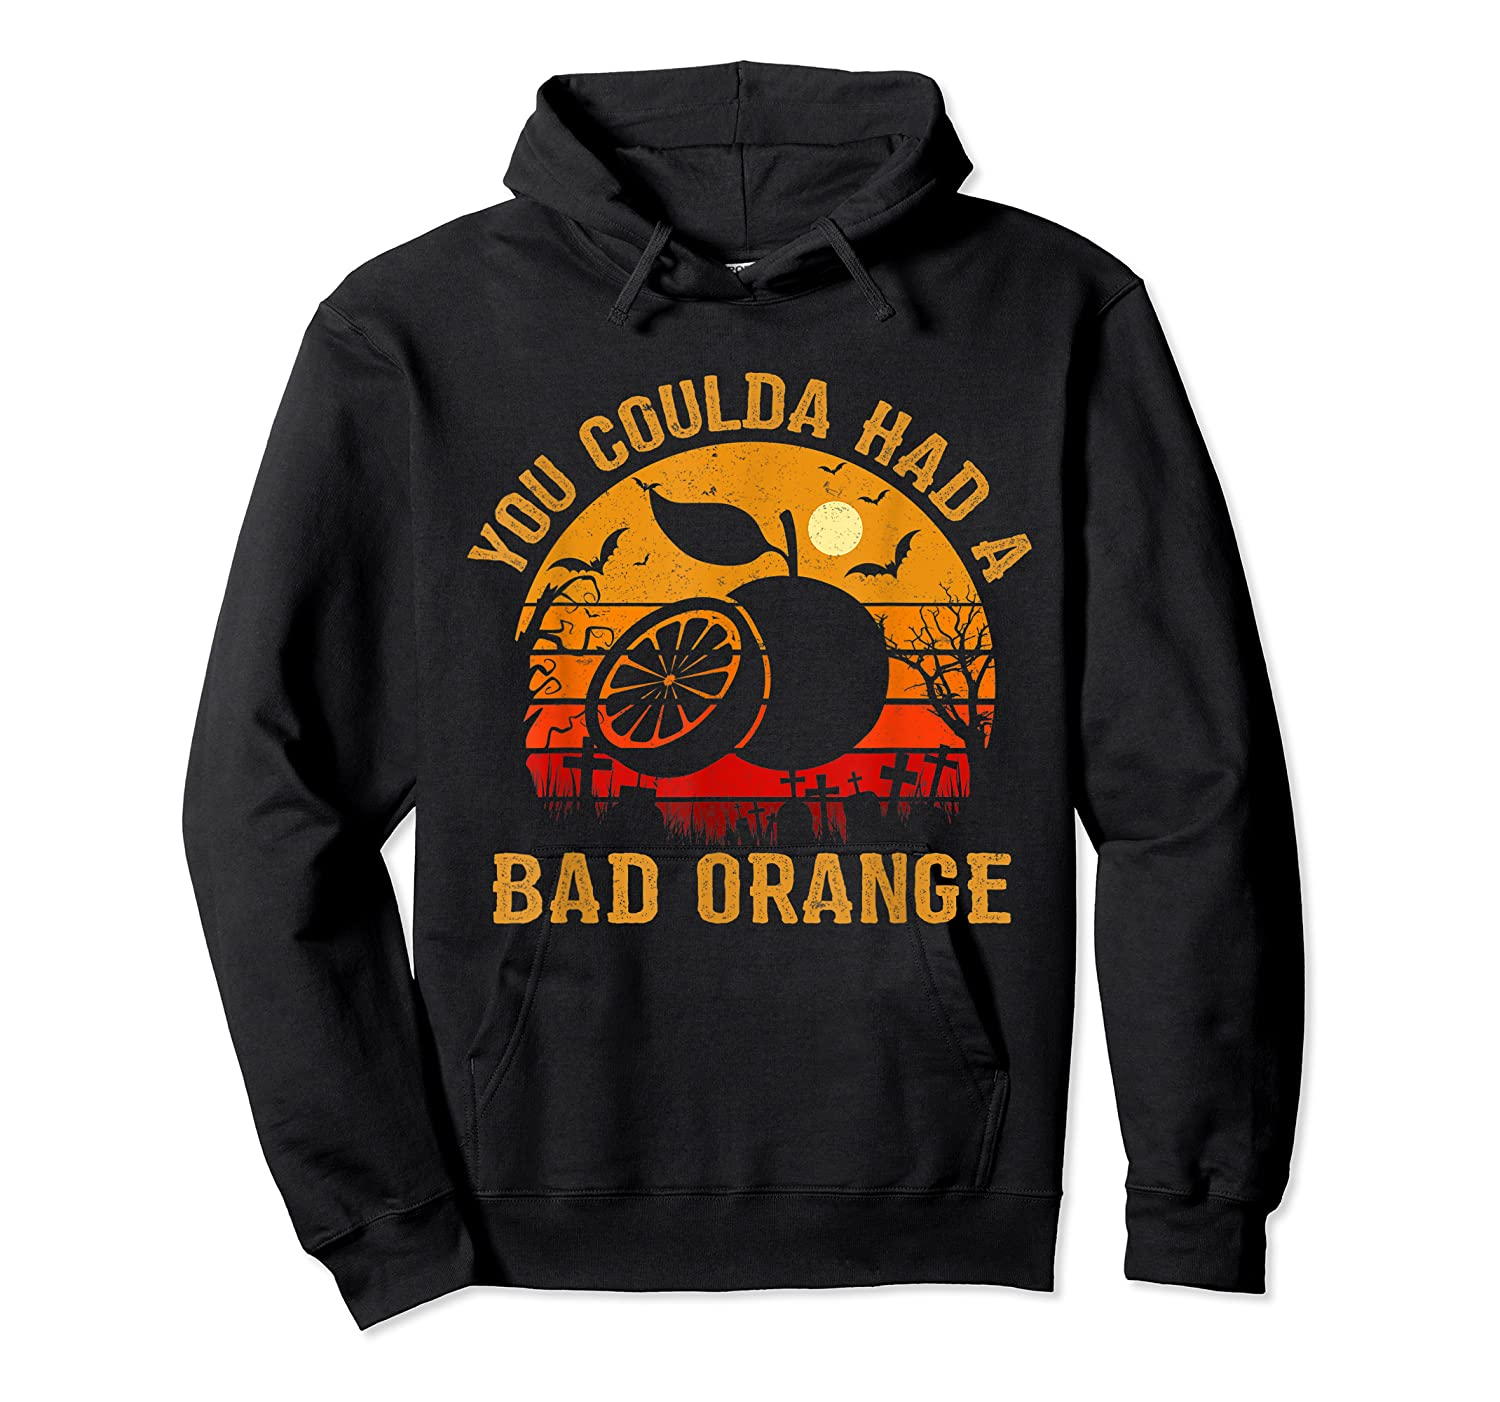 You Coulda Had A Bad Orange Happy Halloween Shirts Unisex Pullover Hoodie